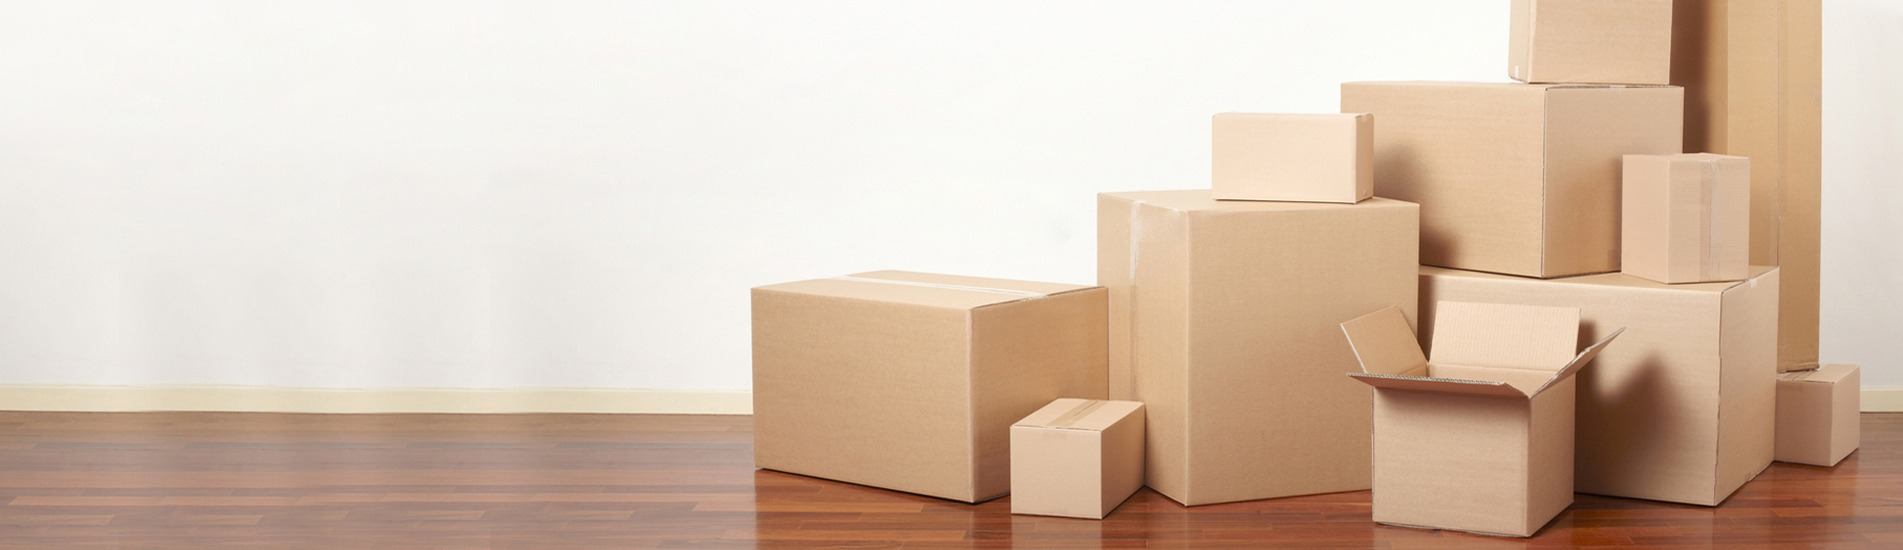 Some reasons to choose cardboard boxes for packaging